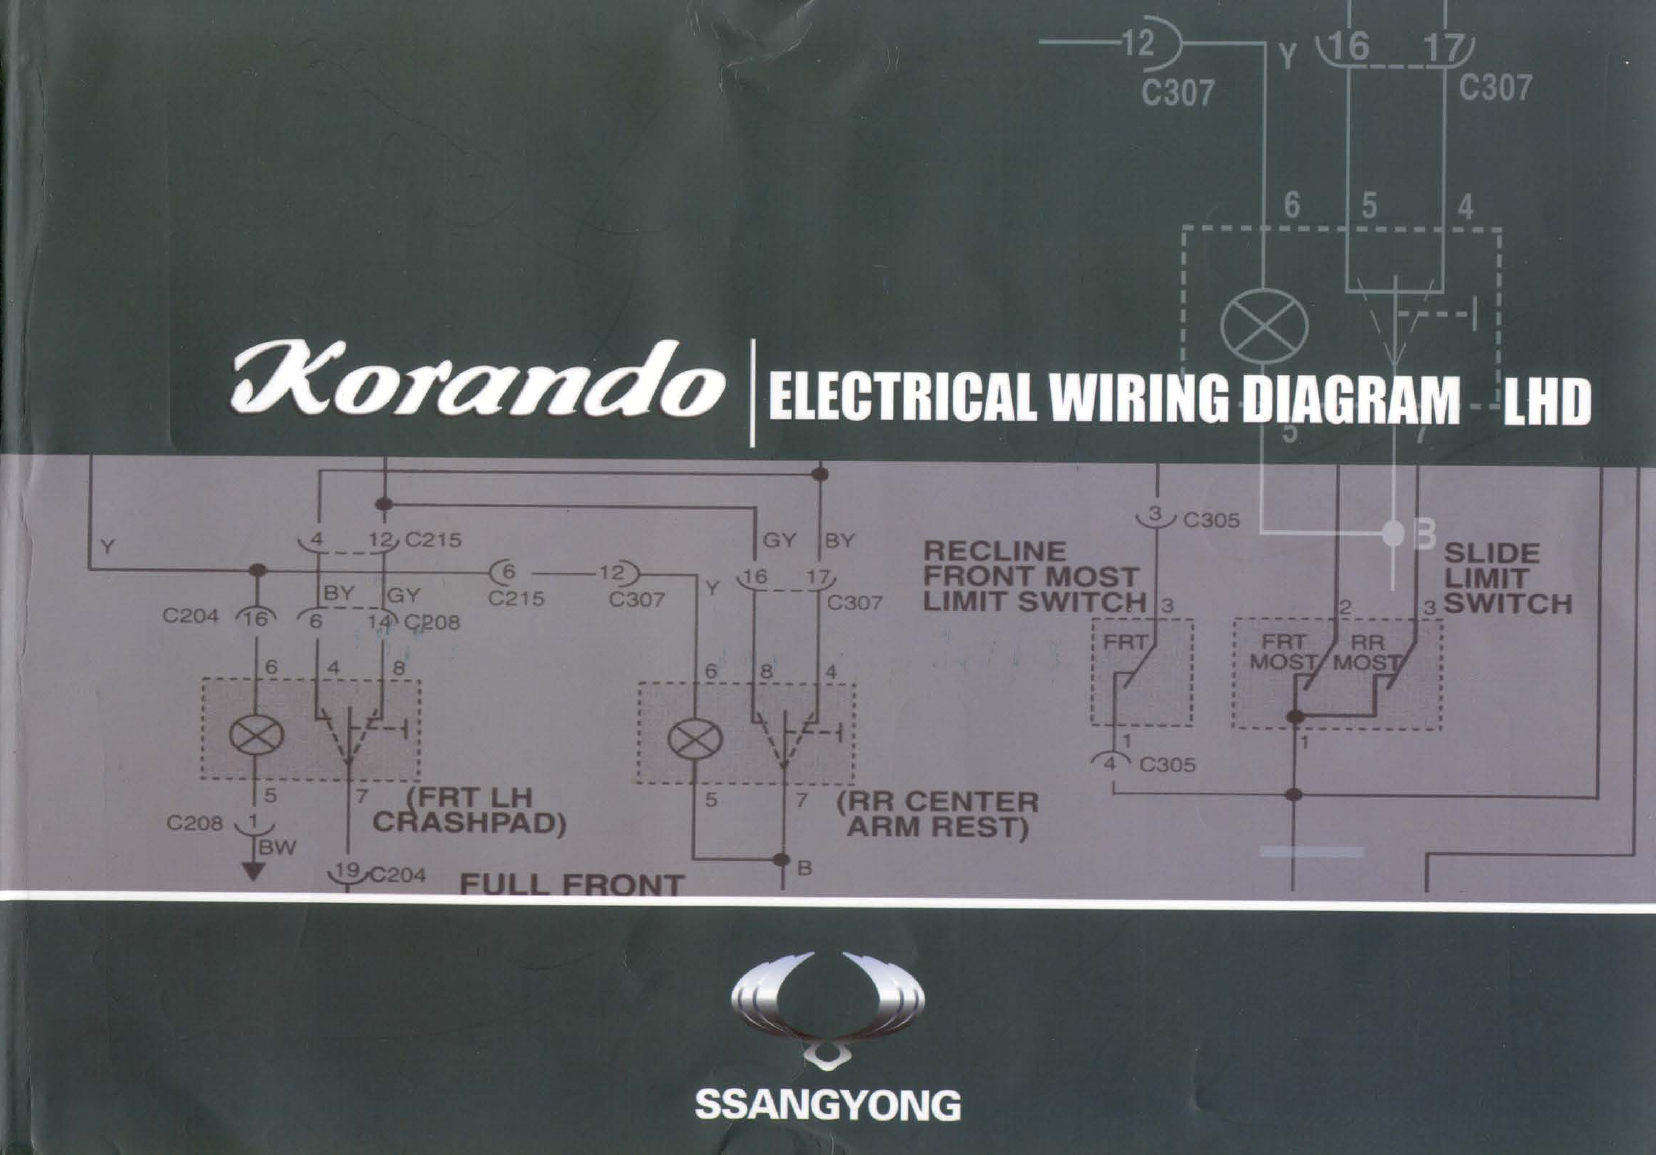 Daewoo Korando Misc Doents Wiring Diagrams PDF on